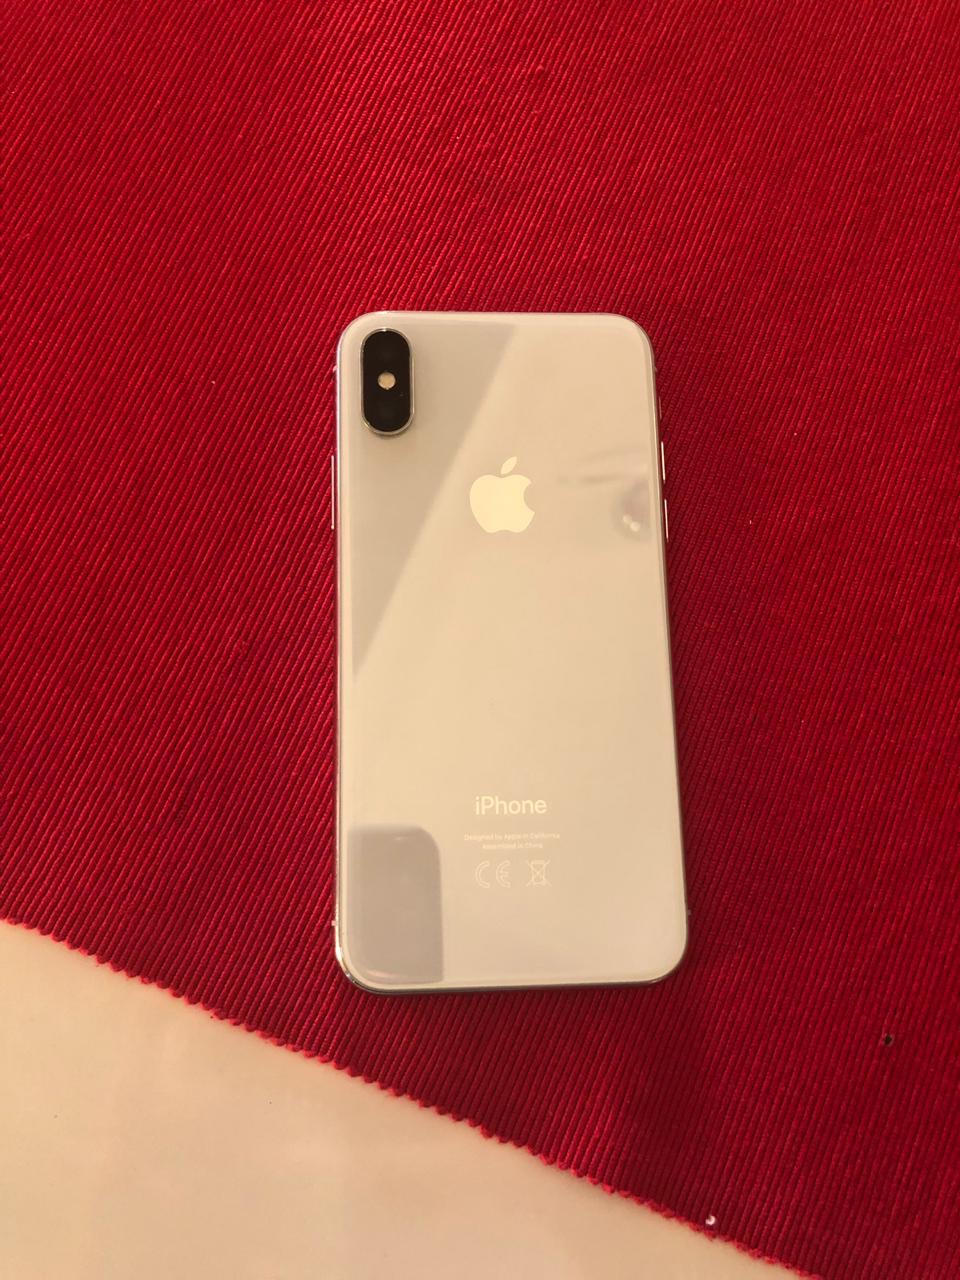 40% DISCOUNT SALES ON:iPhone X (All gigabyte)iPhone XR (All gigabyte)iPhone XS (All gigabyte)iPhone XS Max (All gigabyte)Samsung Galaxy Note 9Samsung Galaxy S9 -  iphone x 64 gb لا تنسَ...